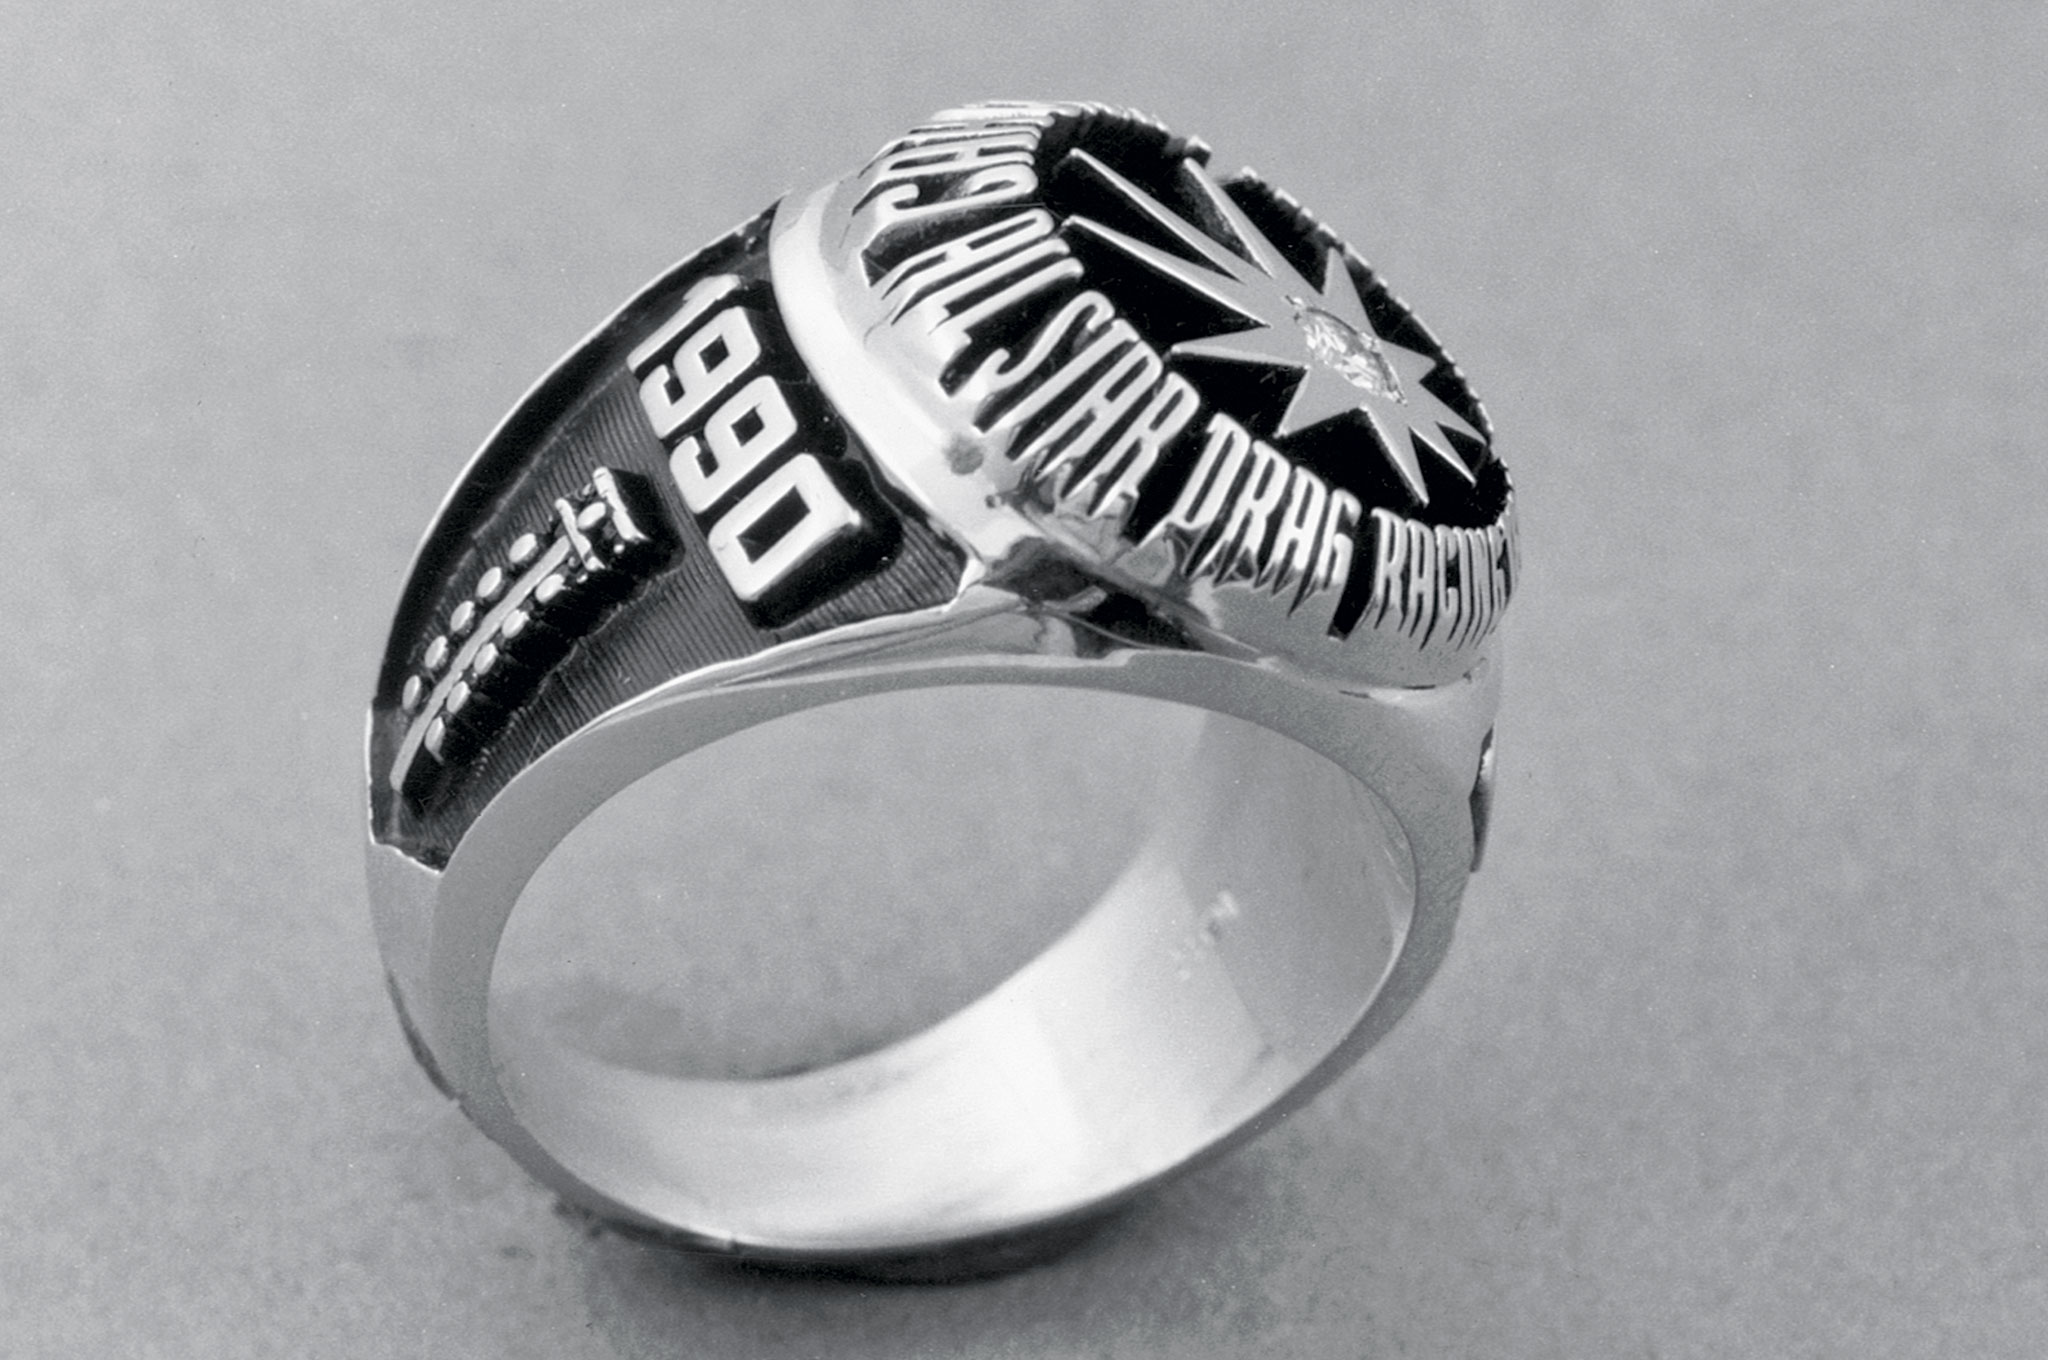 Like everything else, the rings that were emblematic of membership on the All-Star Team changed over the years, ultimately becoming these marvels in the mid-'80s.